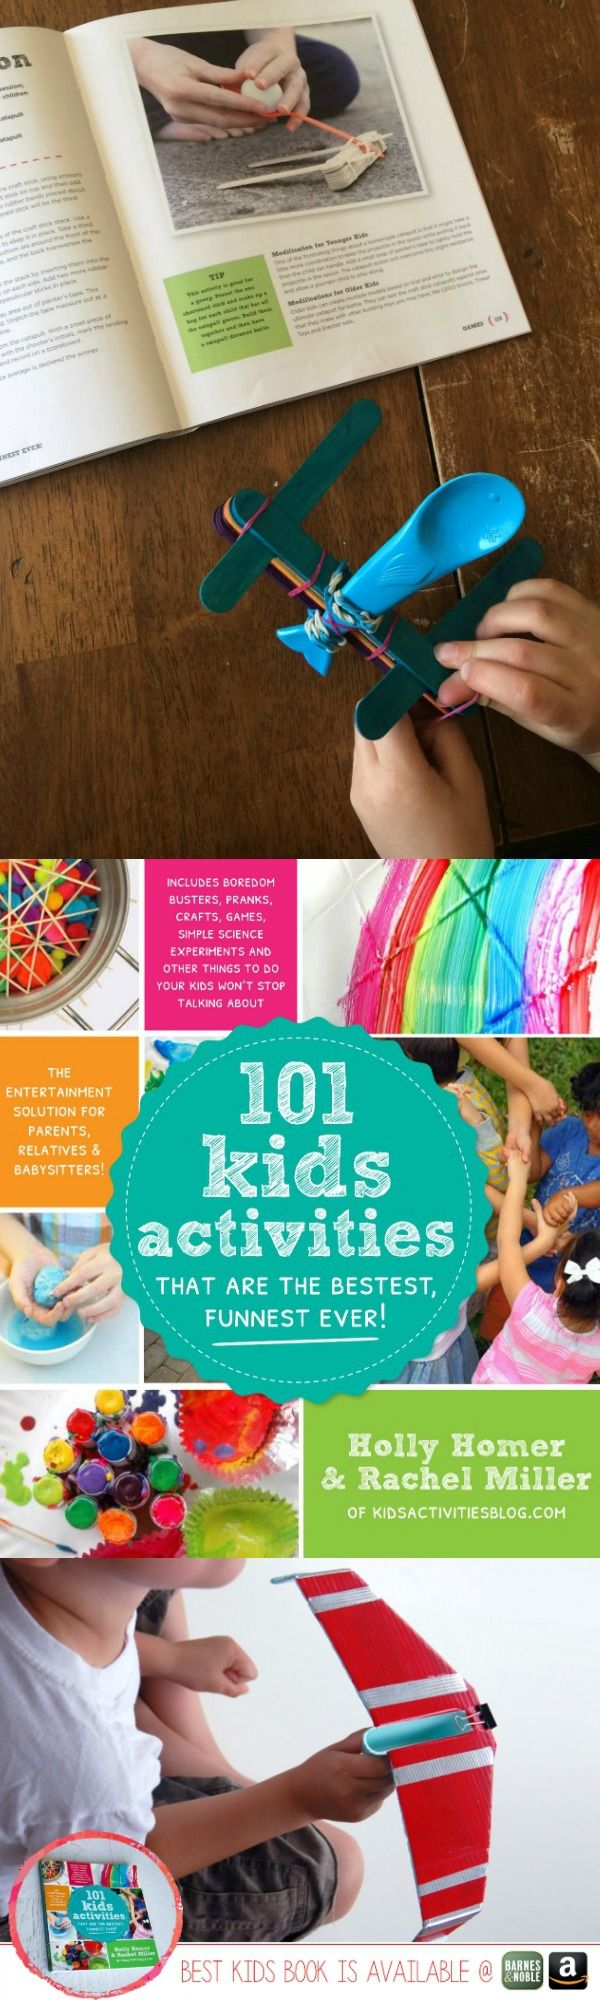 101 Kids Activities -- have you seen this book? It's been a real sanity saver for us this summer.